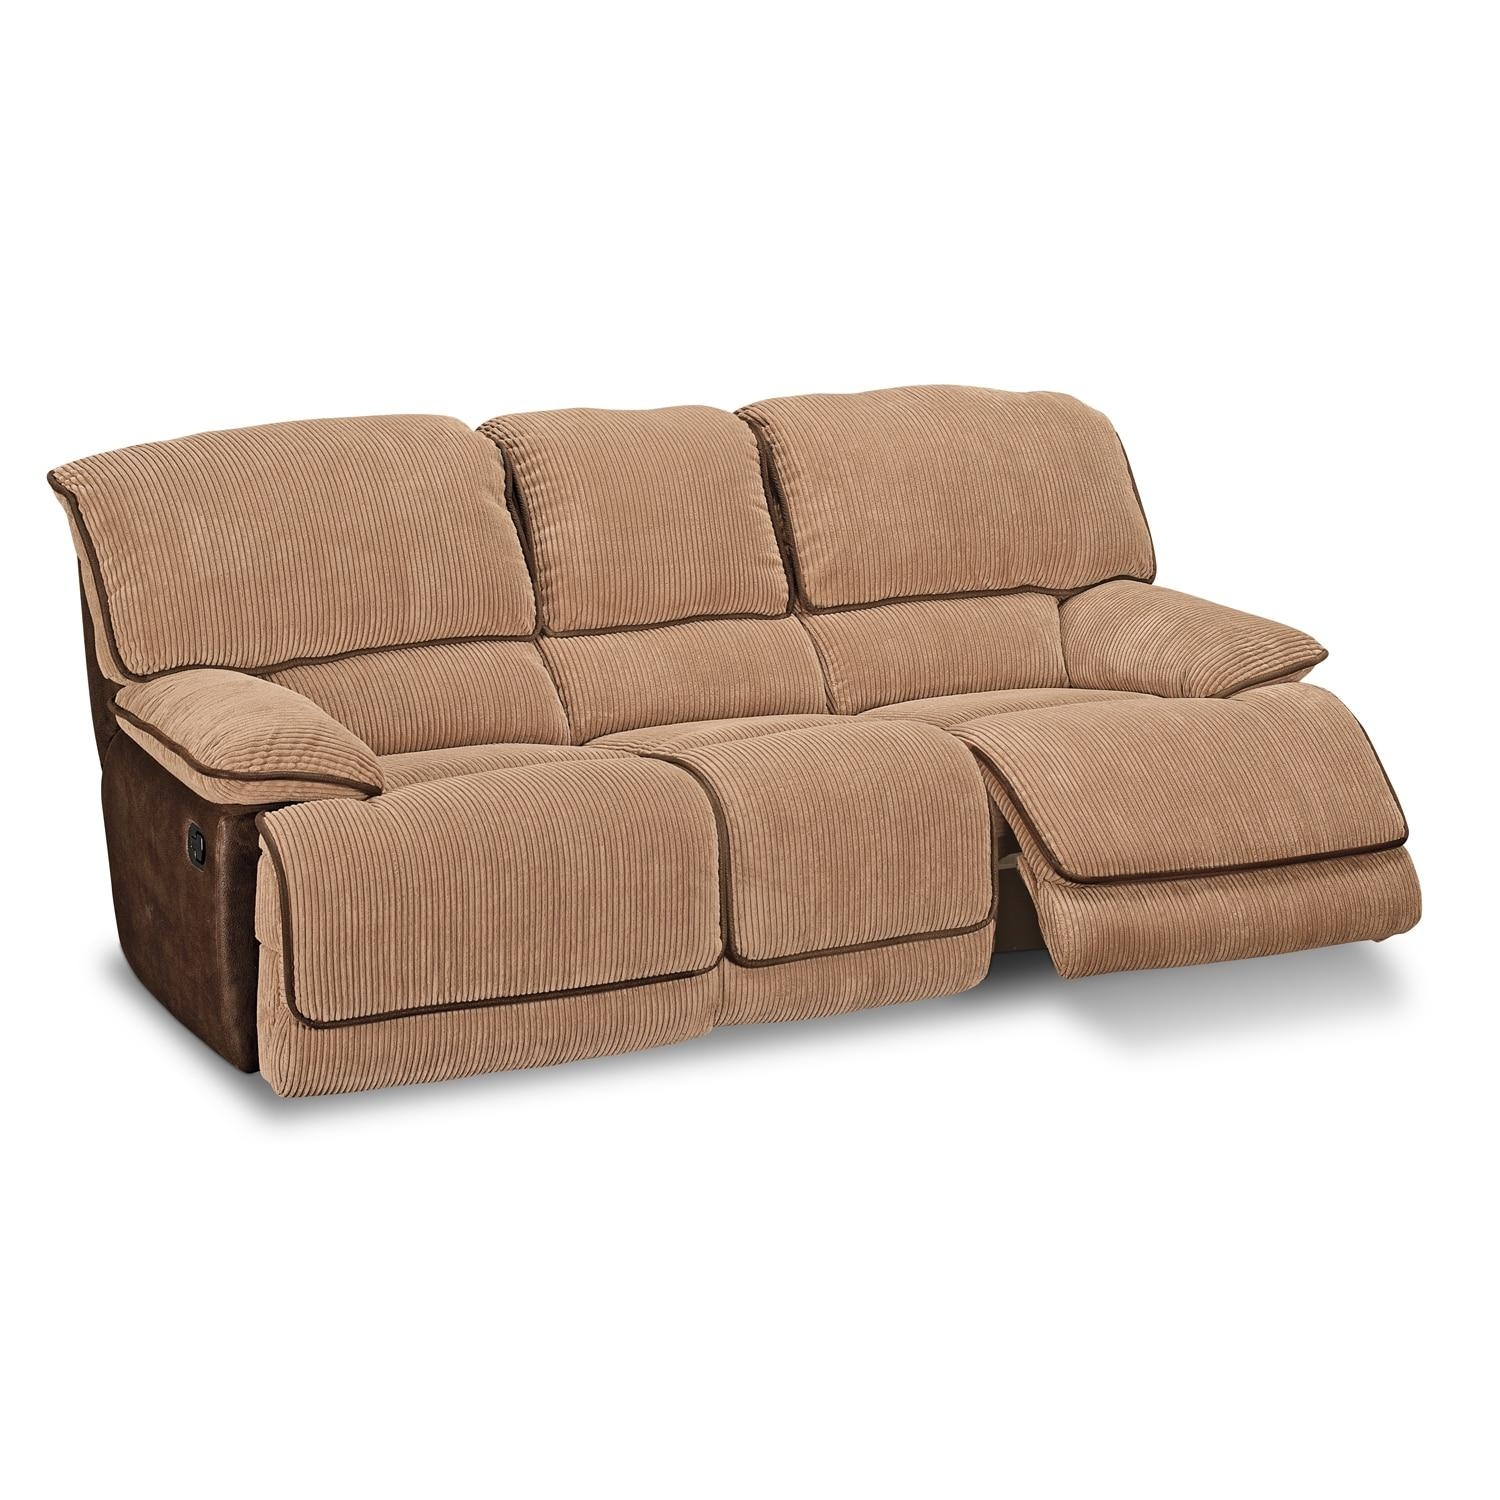 Sofas Center : Pulsar Dual Powerclining Sofa Loveseat Covers Pertaining To Berkline Couches (Image 16 of 20)